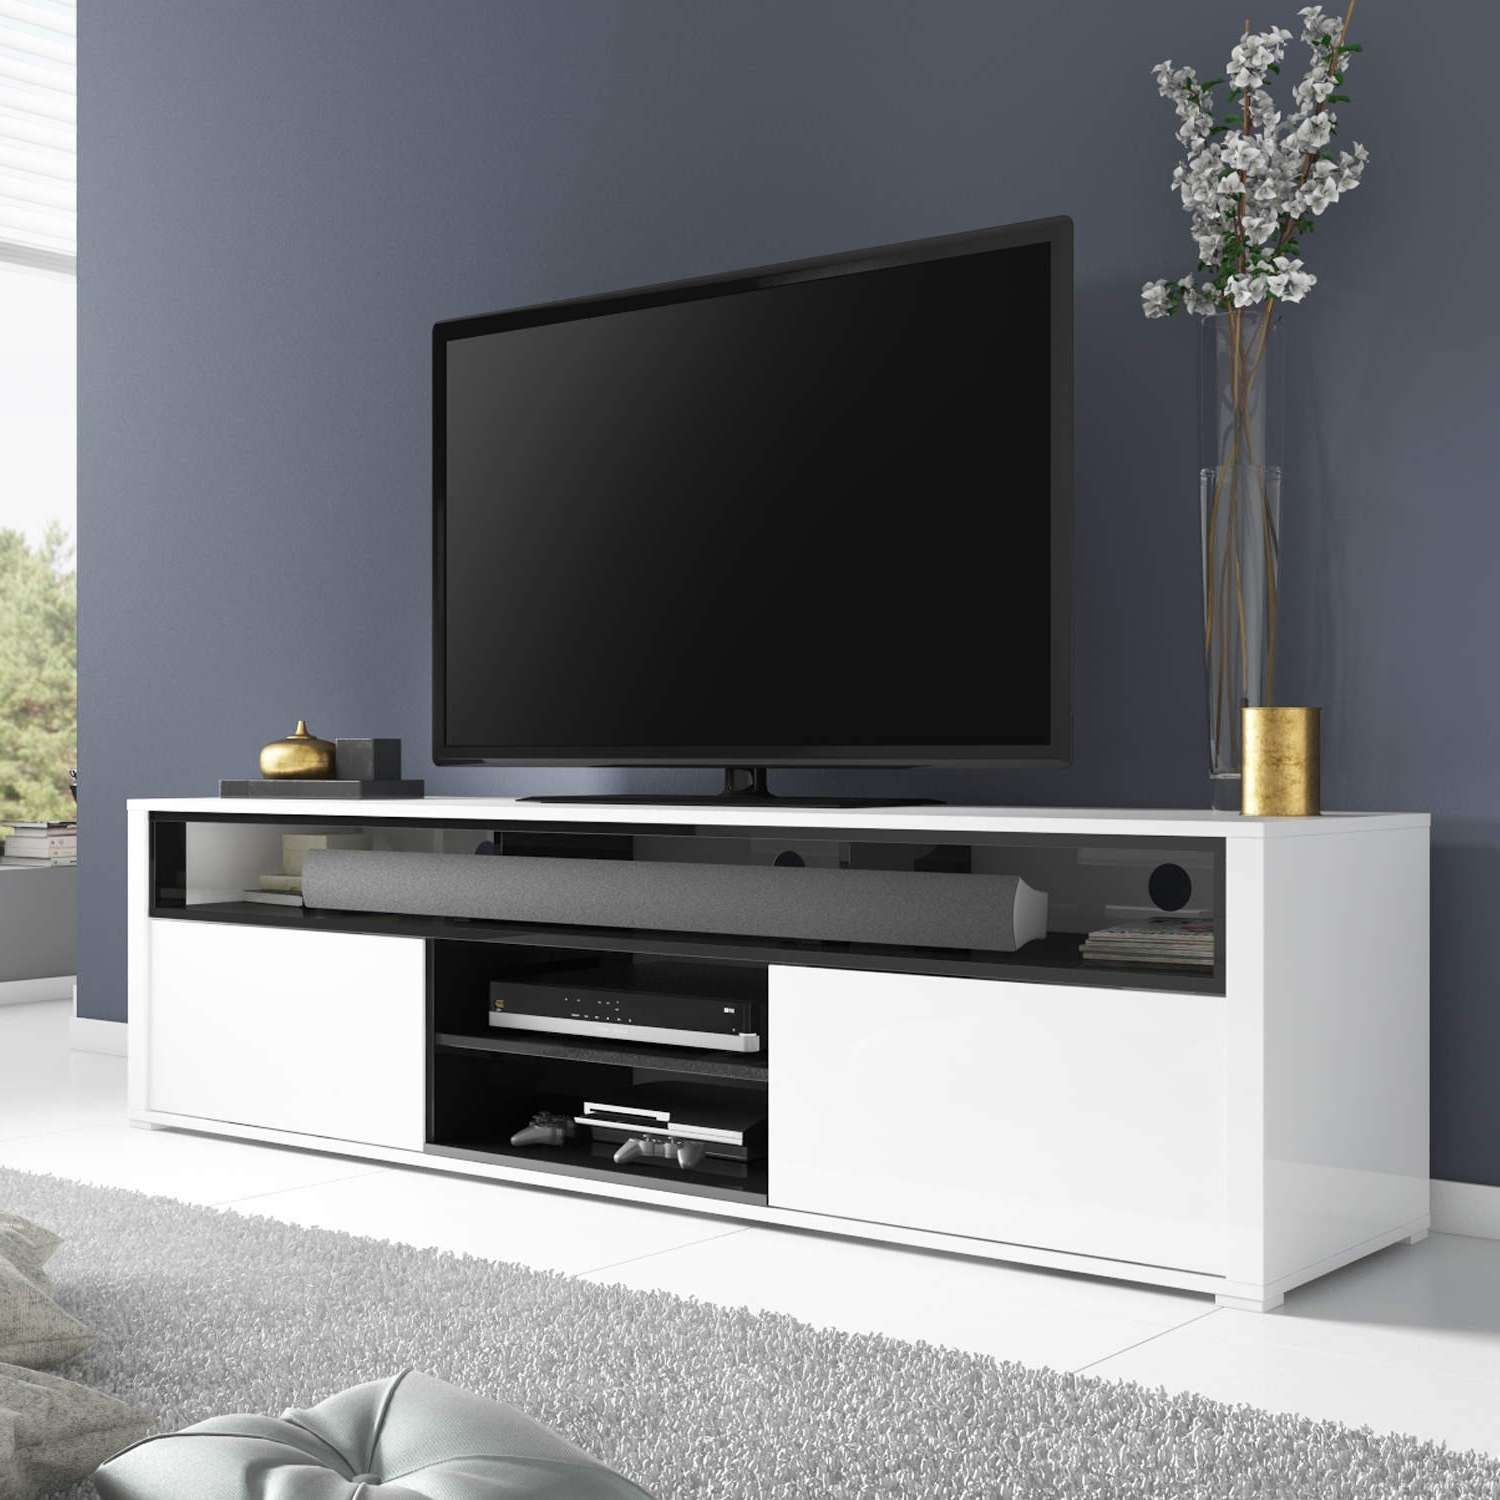 White High Gloss Tv Unit With Soundbar Shelf/ Tv Cabinet/ Tv Stand For Tv Cabinets Gloss White (View 18 of 20)